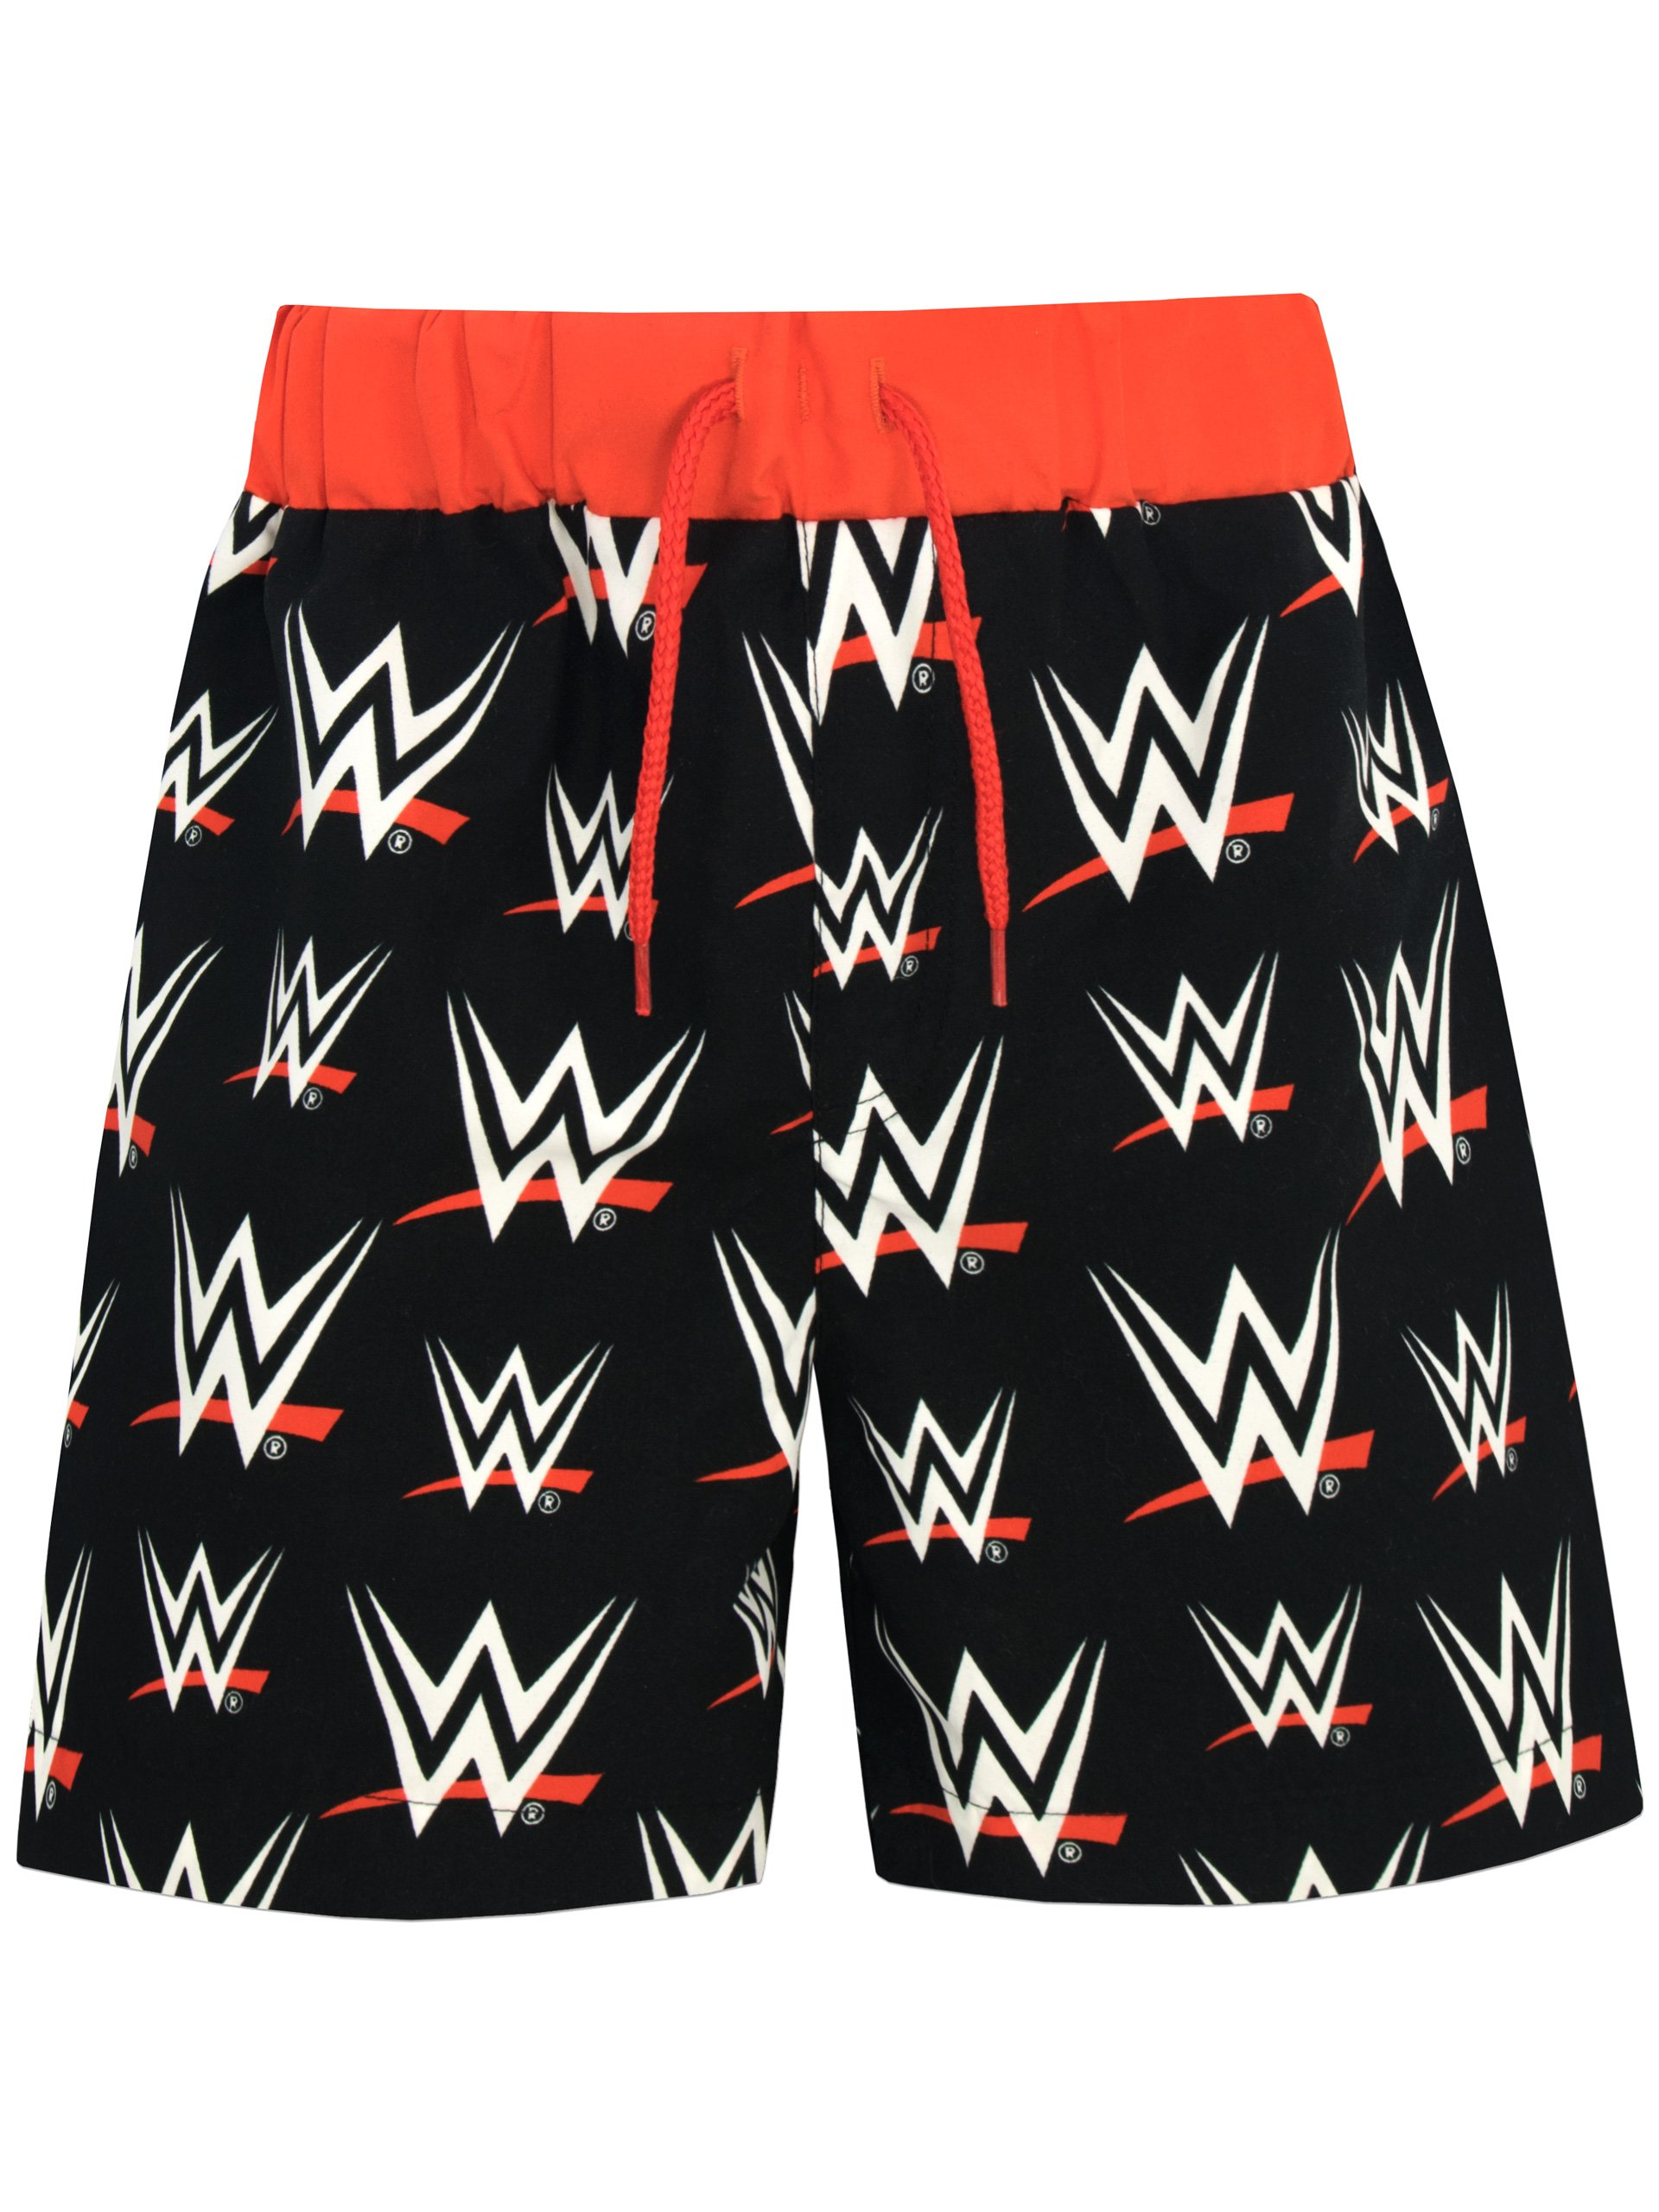 WWE Boys' World Wrestling Entertainment Shorts Black Size 7 by WWE